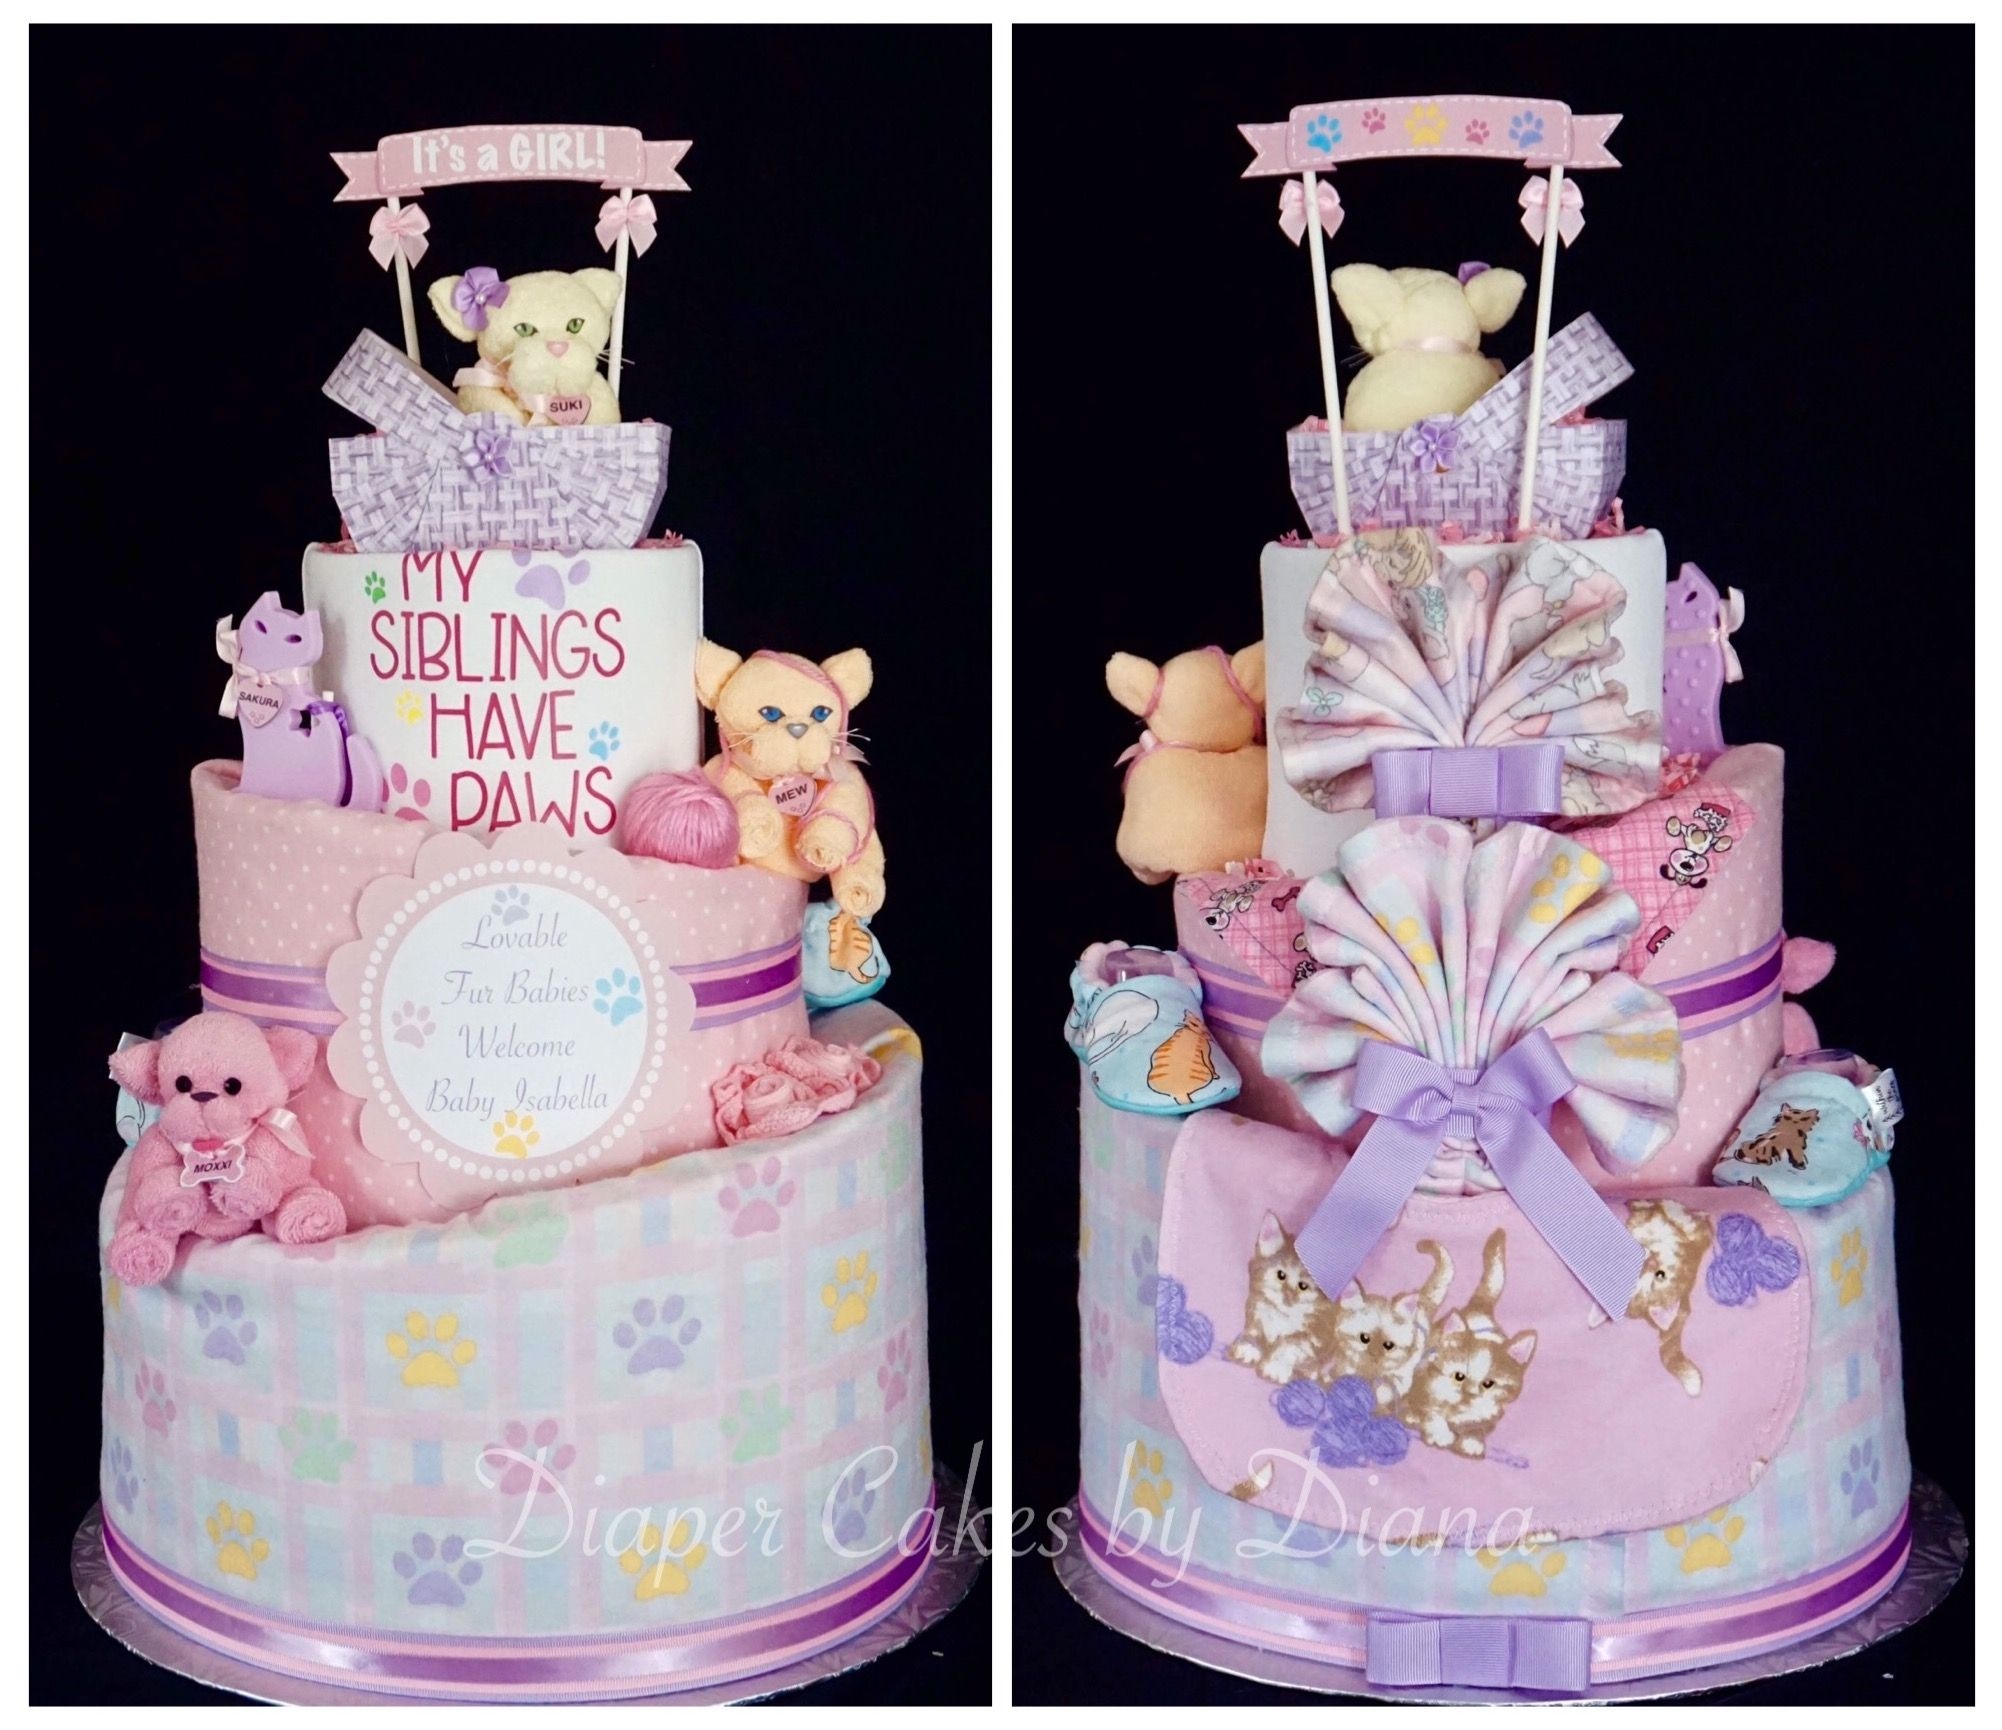 Puppy And Kitten Themed Diaper Cake Made For A New Baby Girl Www Facebook Com Diapercakesbydiana Baby Shower Gift Cake Baby Girl Diaper Cake Pamper Cake